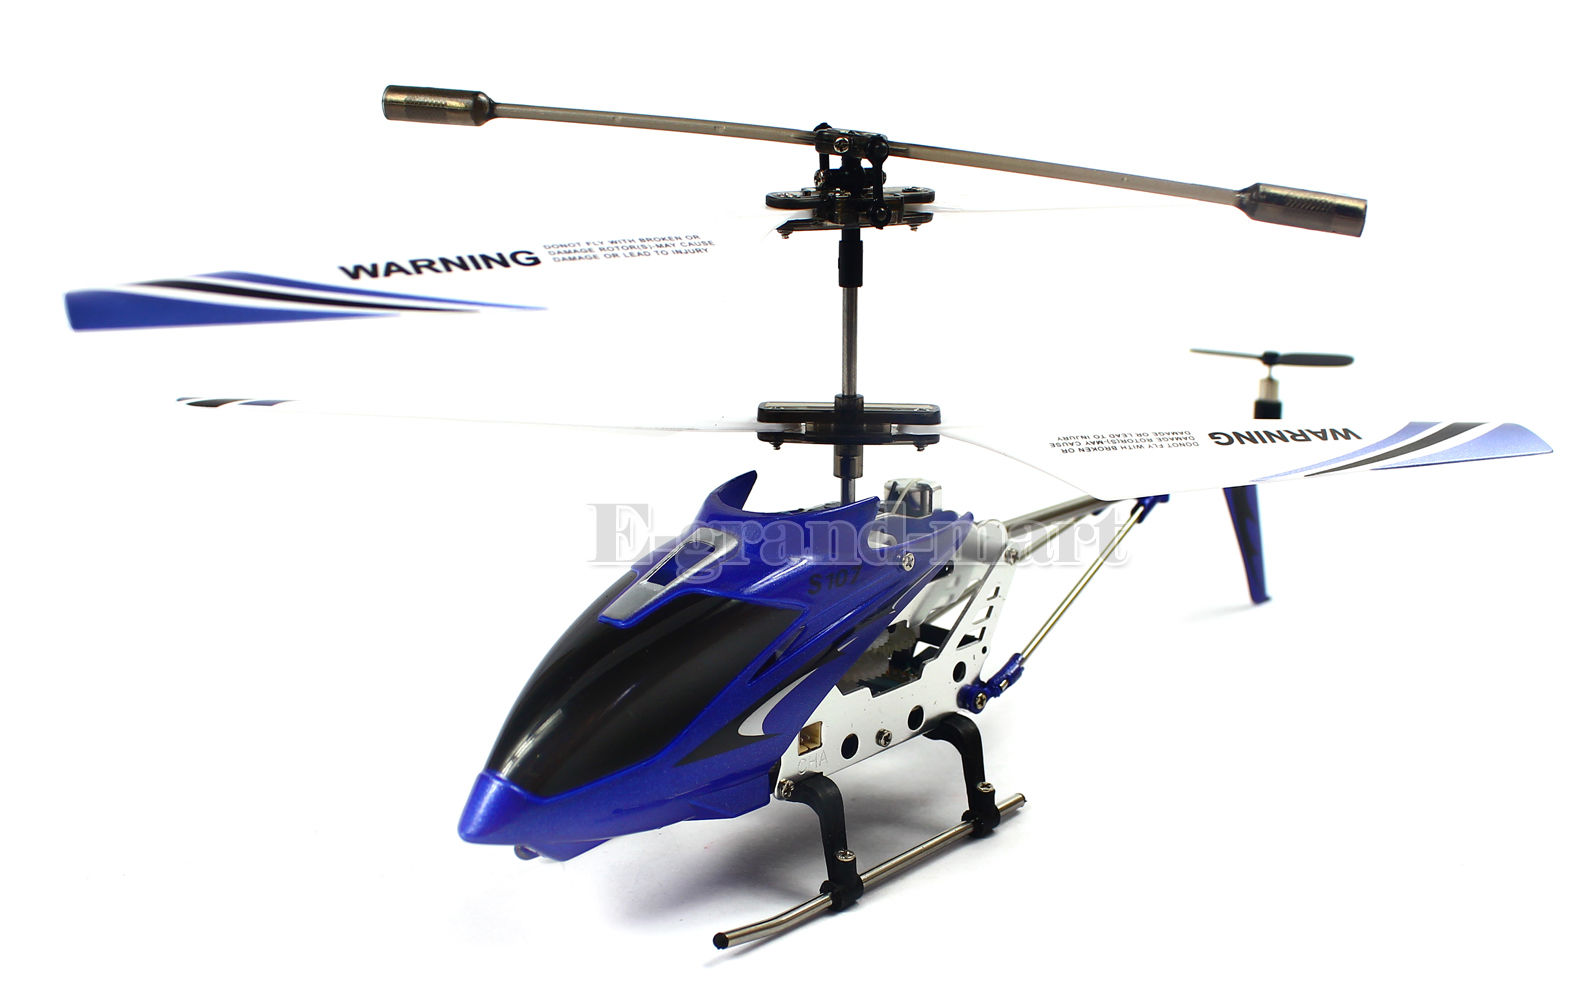 cheerwing s107g mini remote control rc helicopter 3 5ch alloy copter with gyro 702658127466 ebay. Black Bedroom Furniture Sets. Home Design Ideas